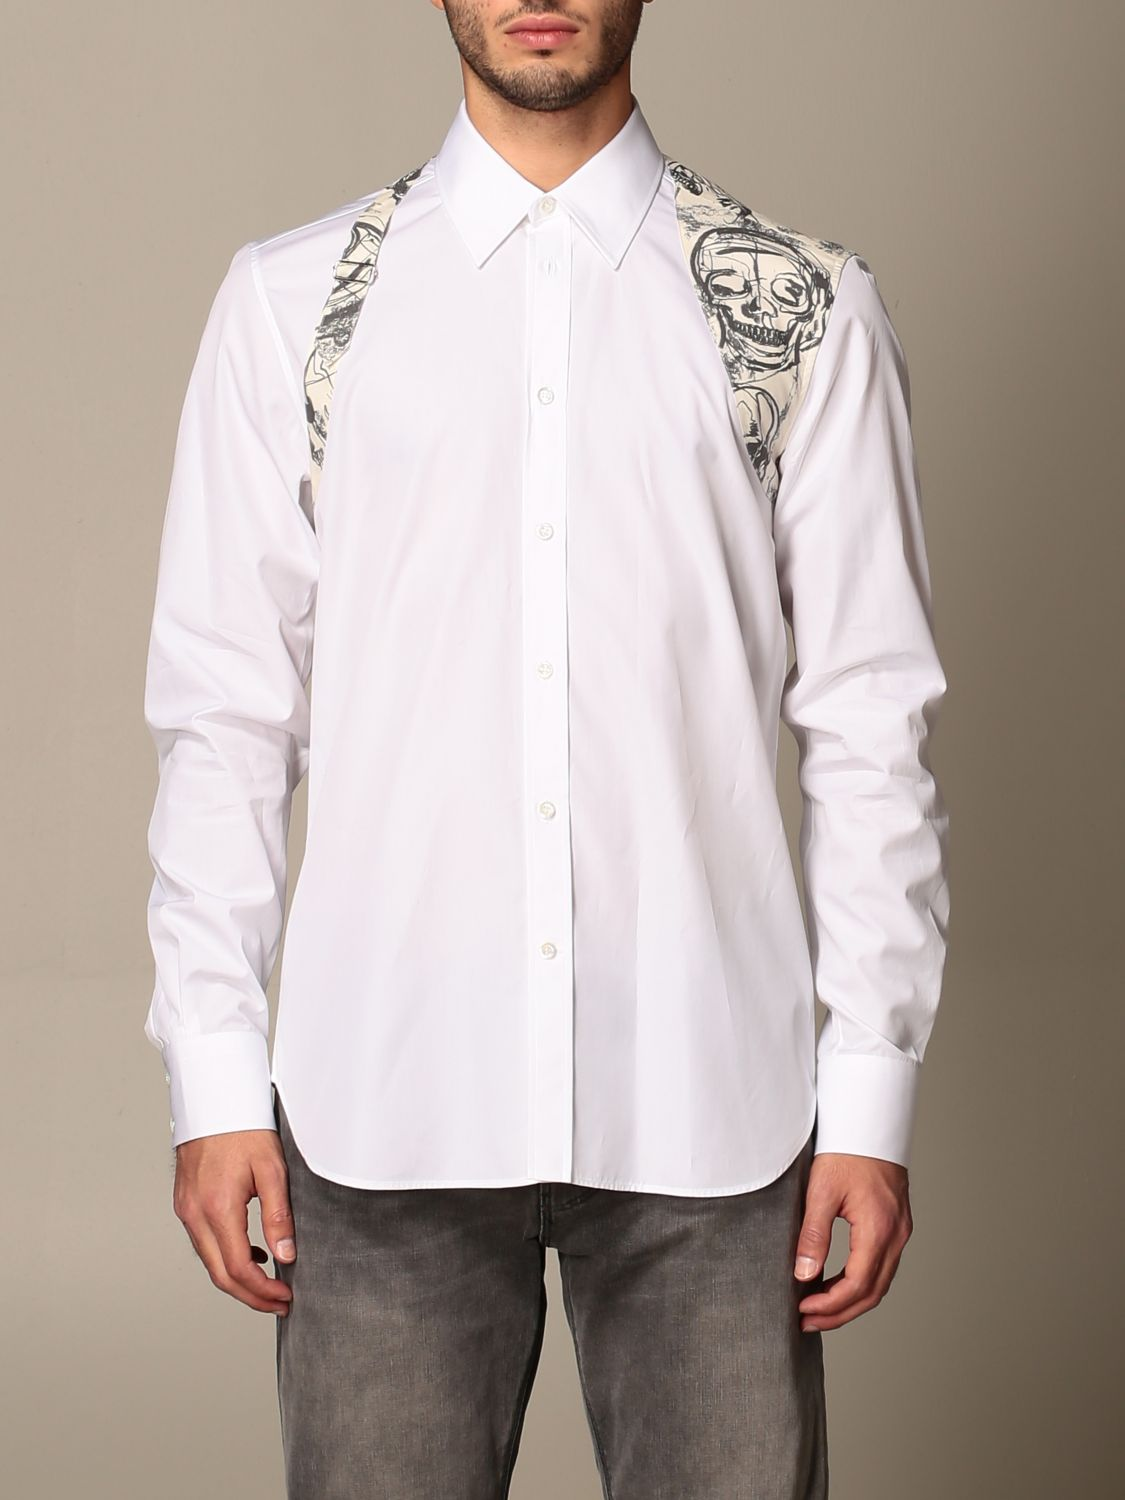 Shirt Alexander Mcqueen: Alexander McQueen shirt with skull print buckle white 1